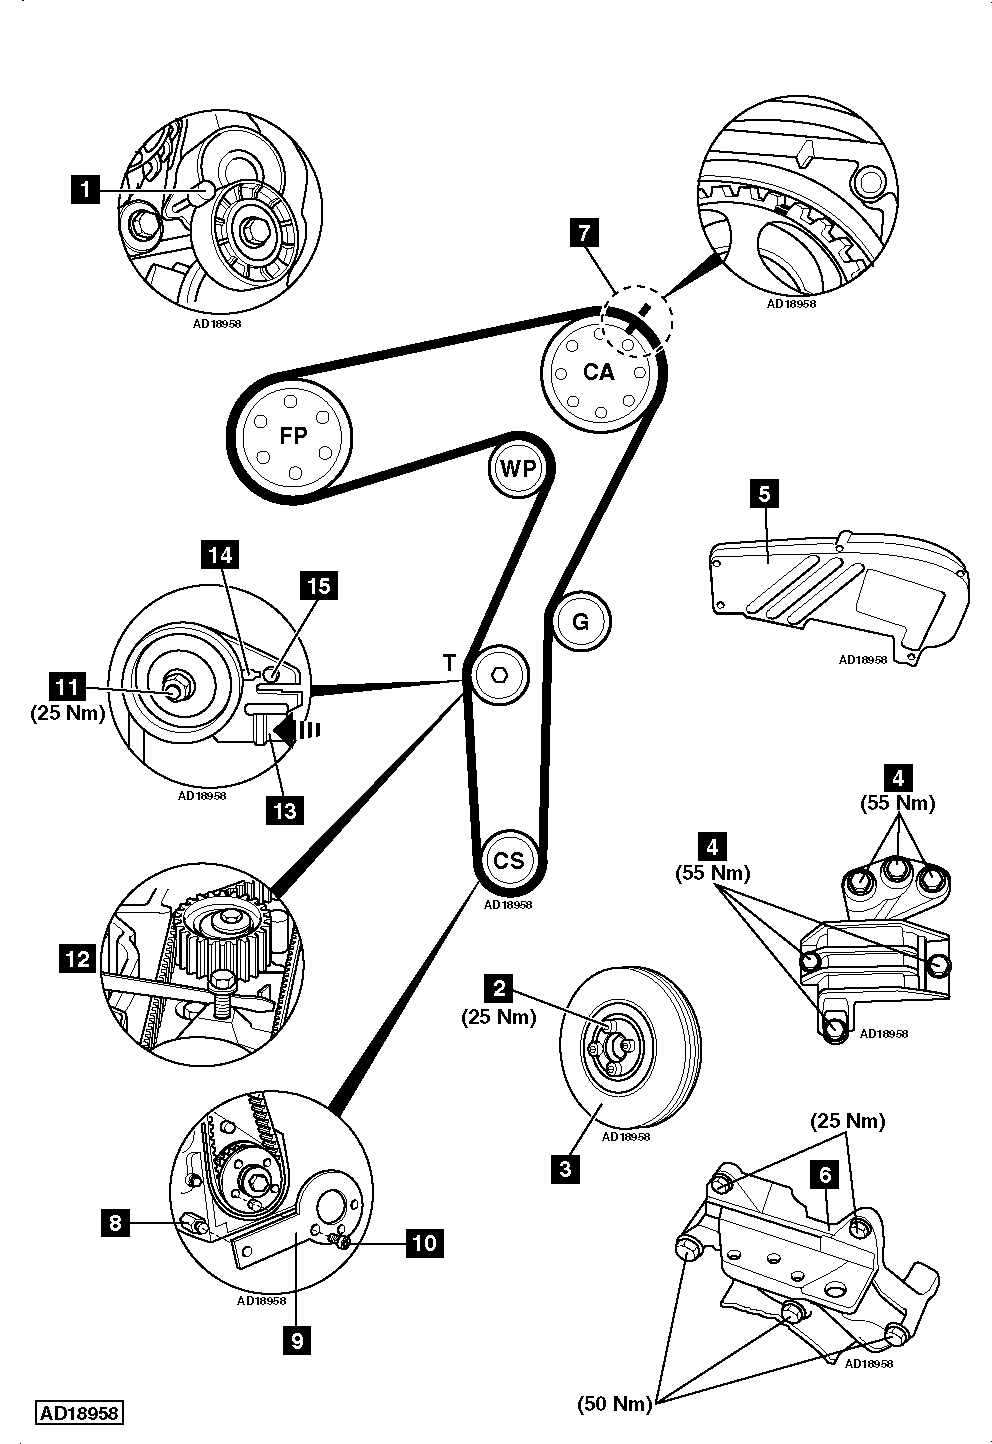 Vectra C Wiring Diagram Honda Motorcycle Repair Diagrams